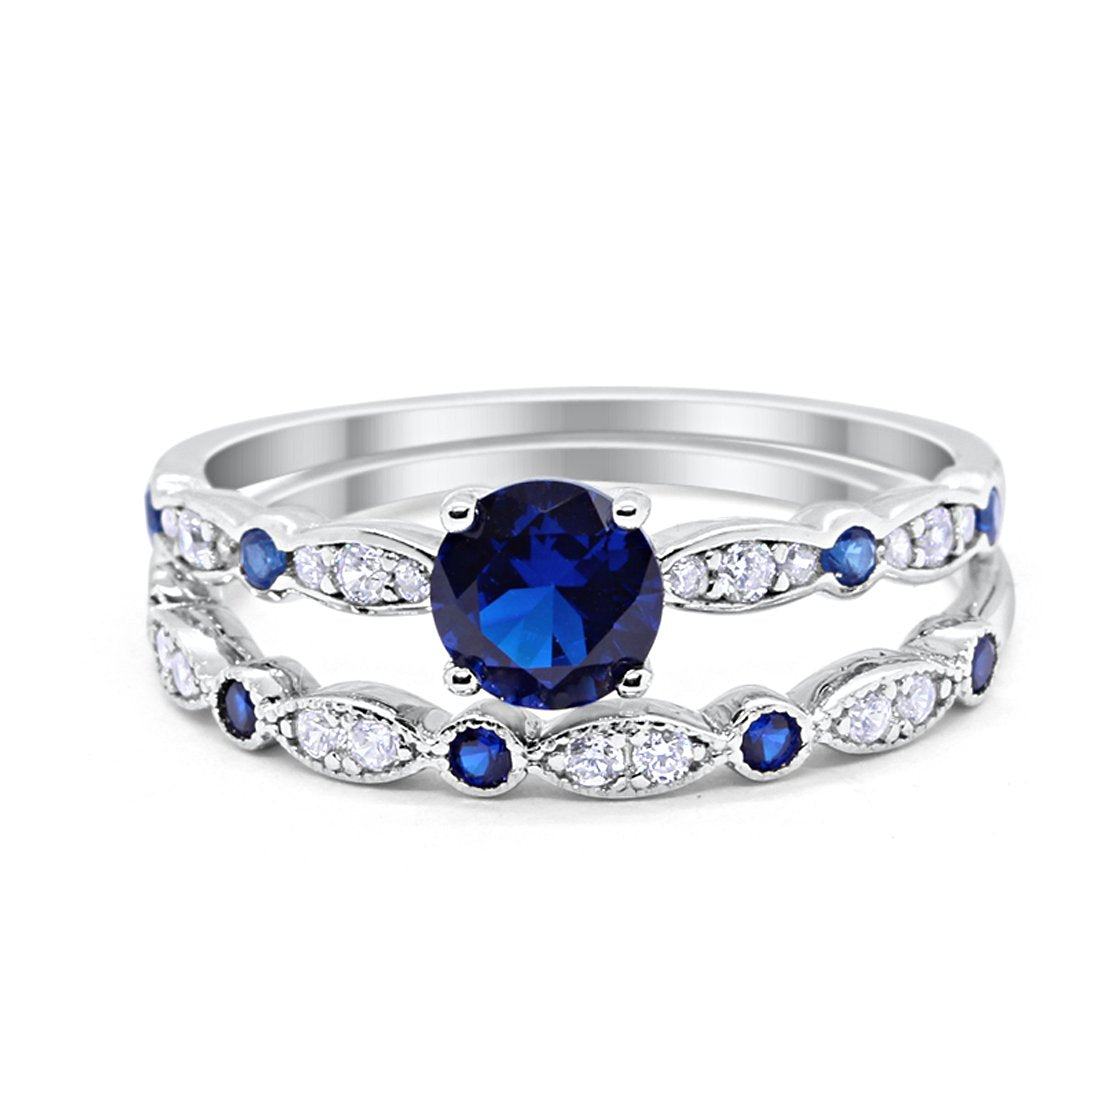 6f15cc48570 Two Piece Wedding Engagement Bridal Set Art Deco Simulated Sapphire 925  Sterling Silver Choose Color. Tap to expand